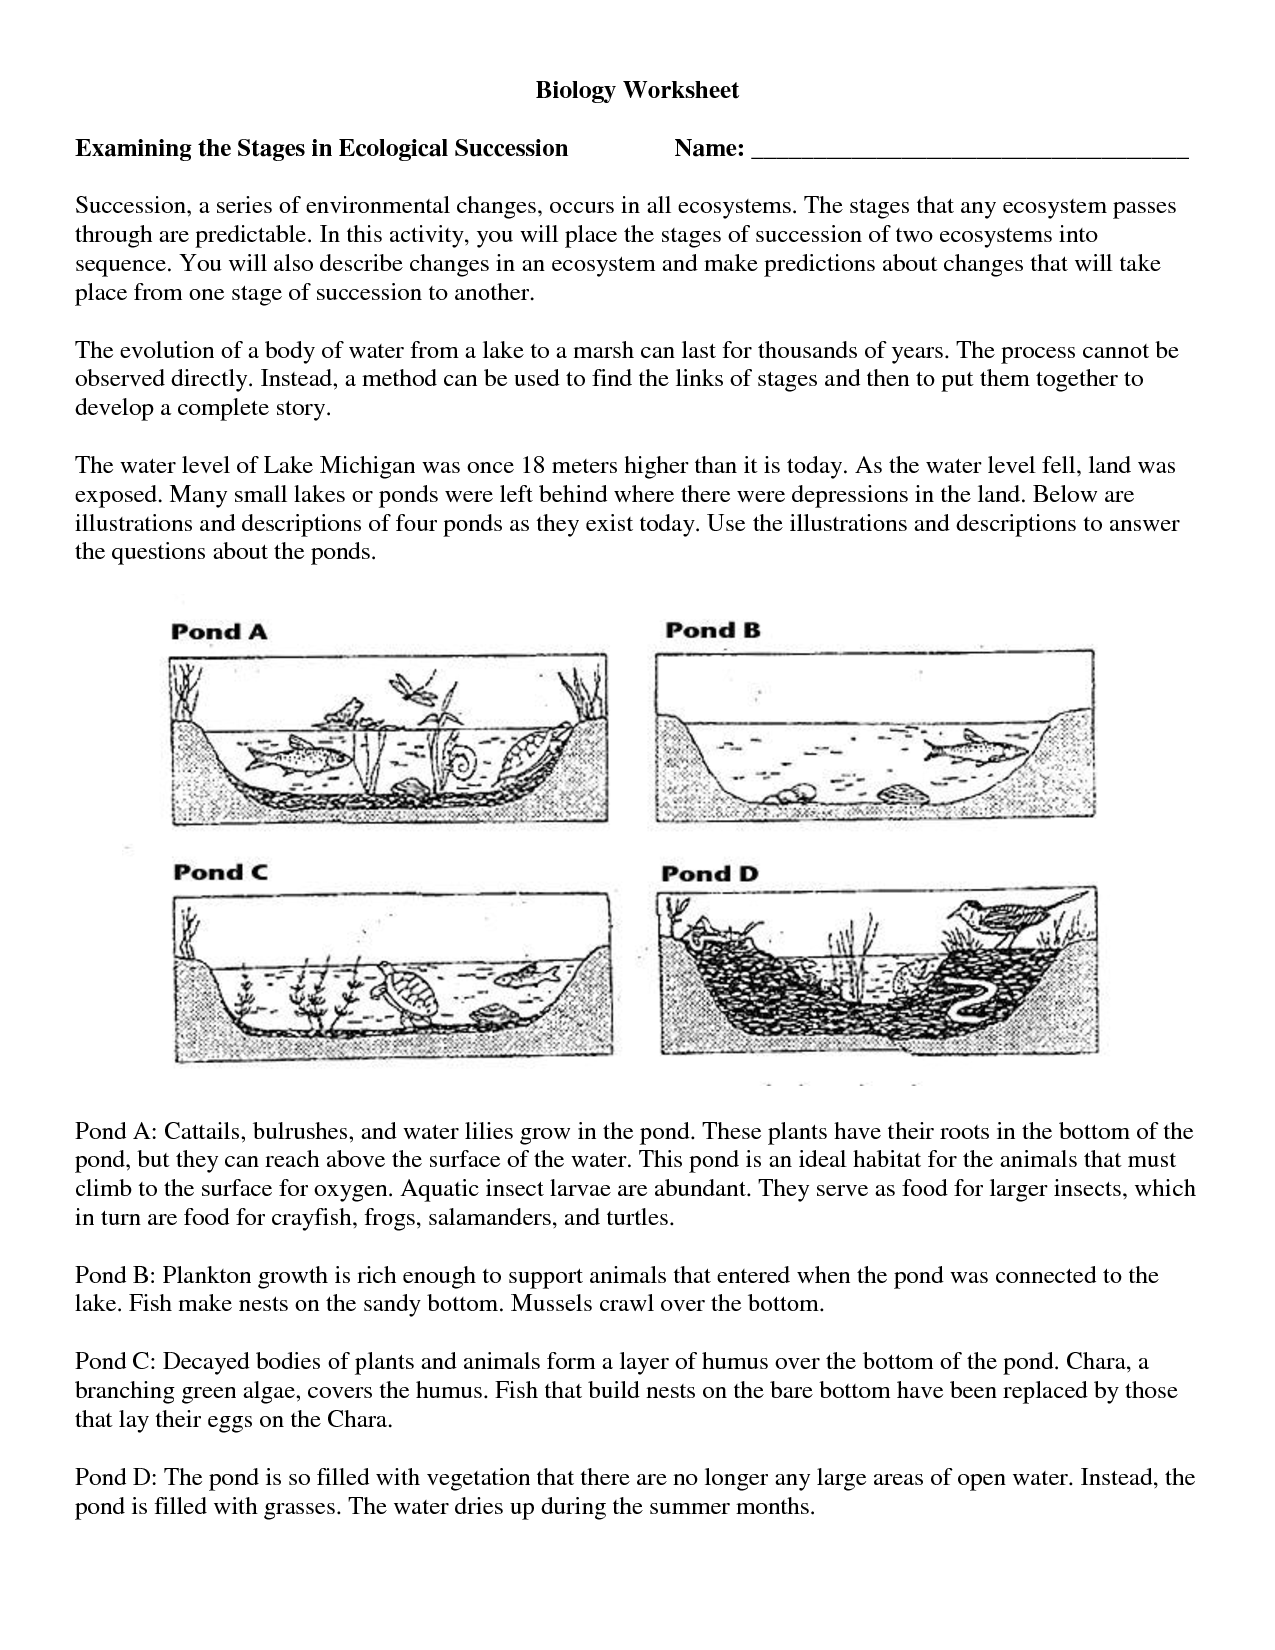 Ecology Worksheet For 9th Biology